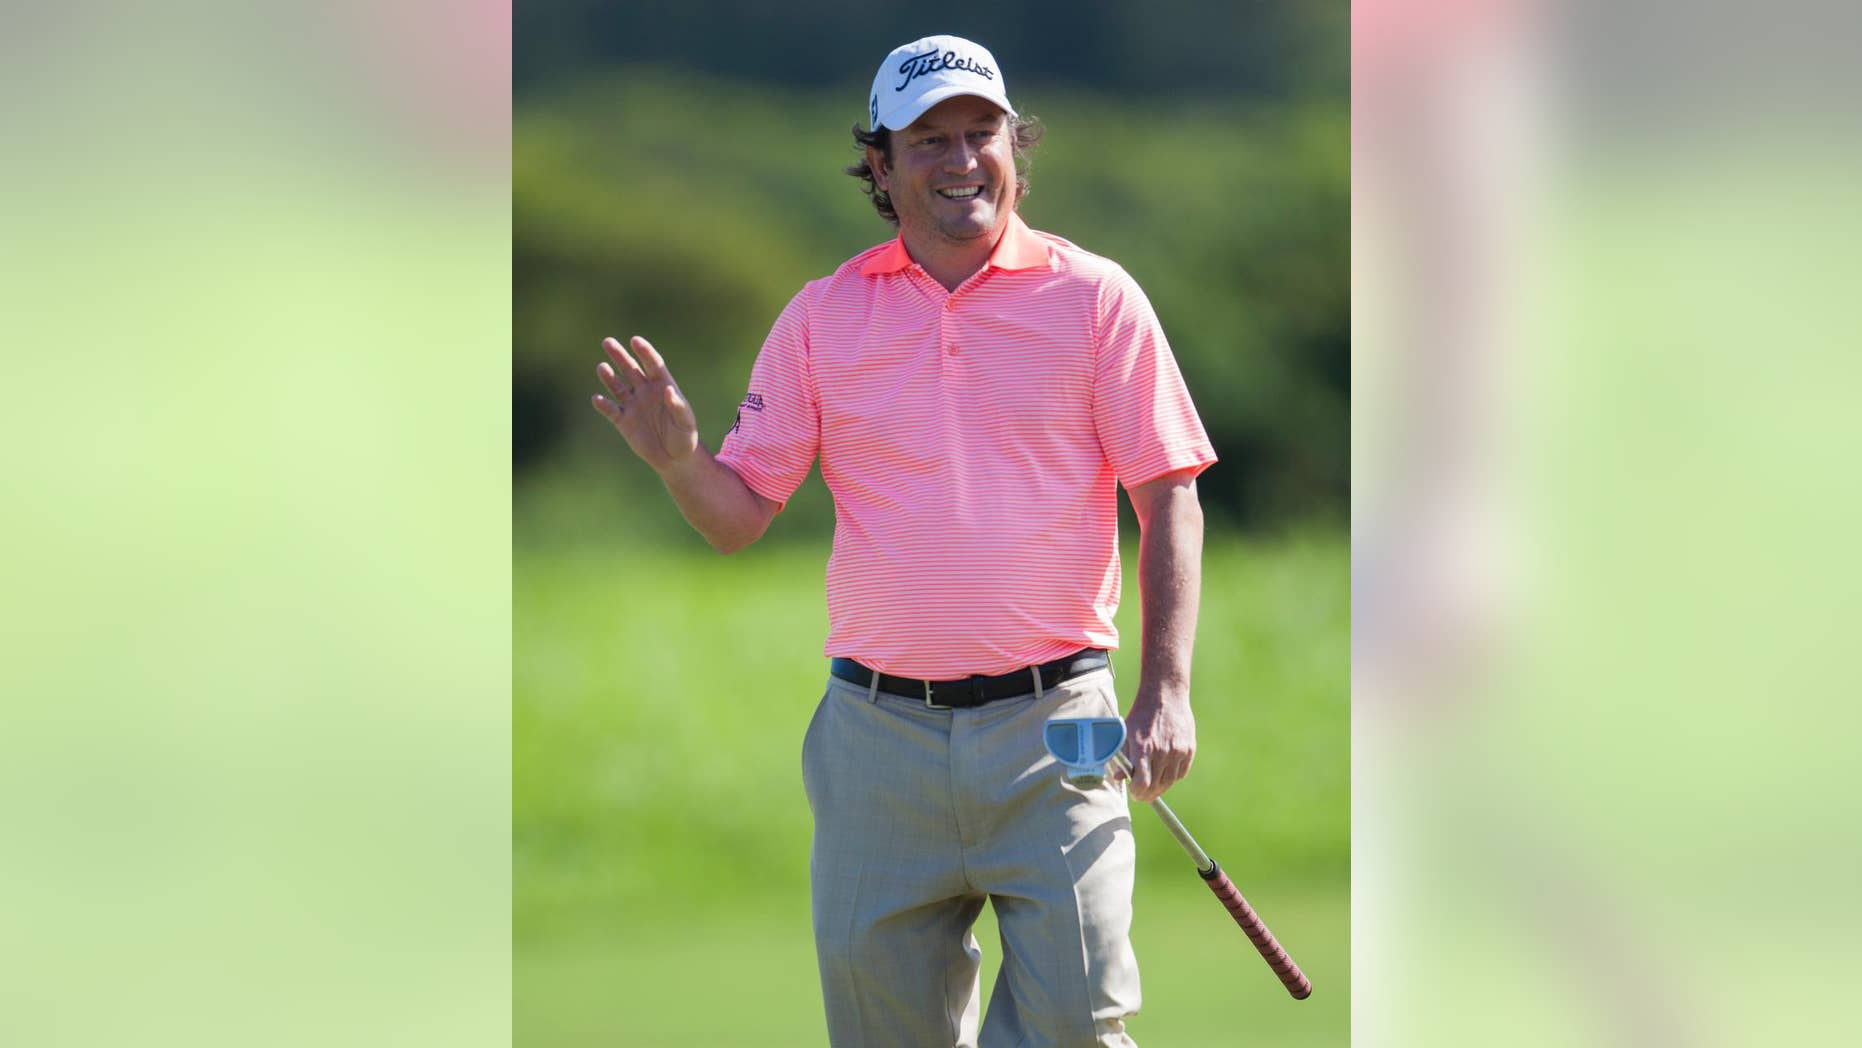 Tim Clark, of South Africa, waves to the gallery after making a birdie putt on the second green during the first round of the Tournament of Champions golf tournament, Friday, Jan. 9, 2015, in Kapalua, Hawaii. (AP Photo/Marco Garcia)